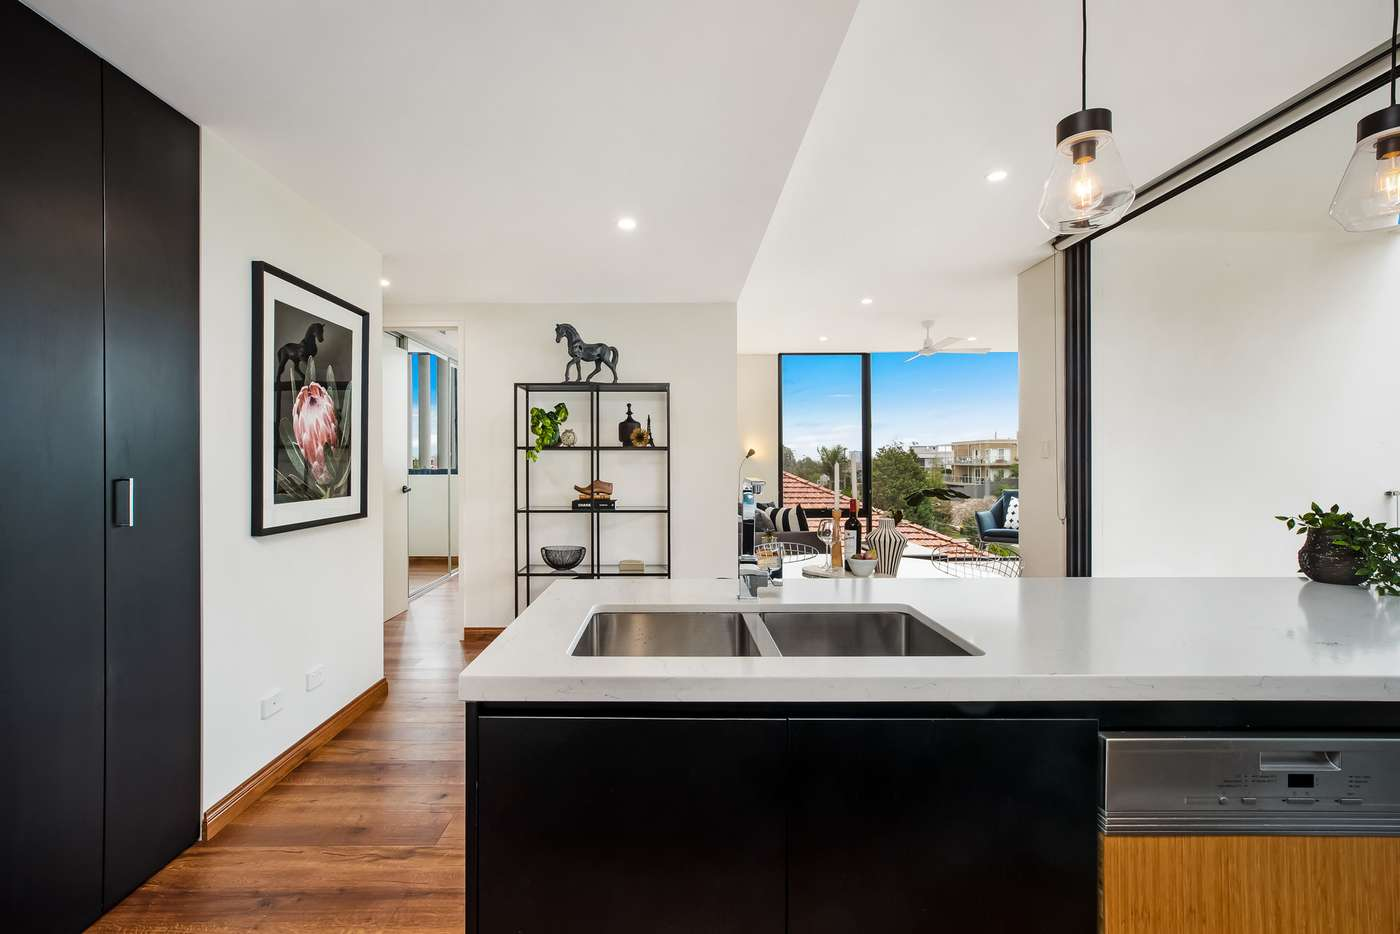 Main view of Homely apartment listing, 103/46-48 Gladstone Avenue, Ryde NSW 2112